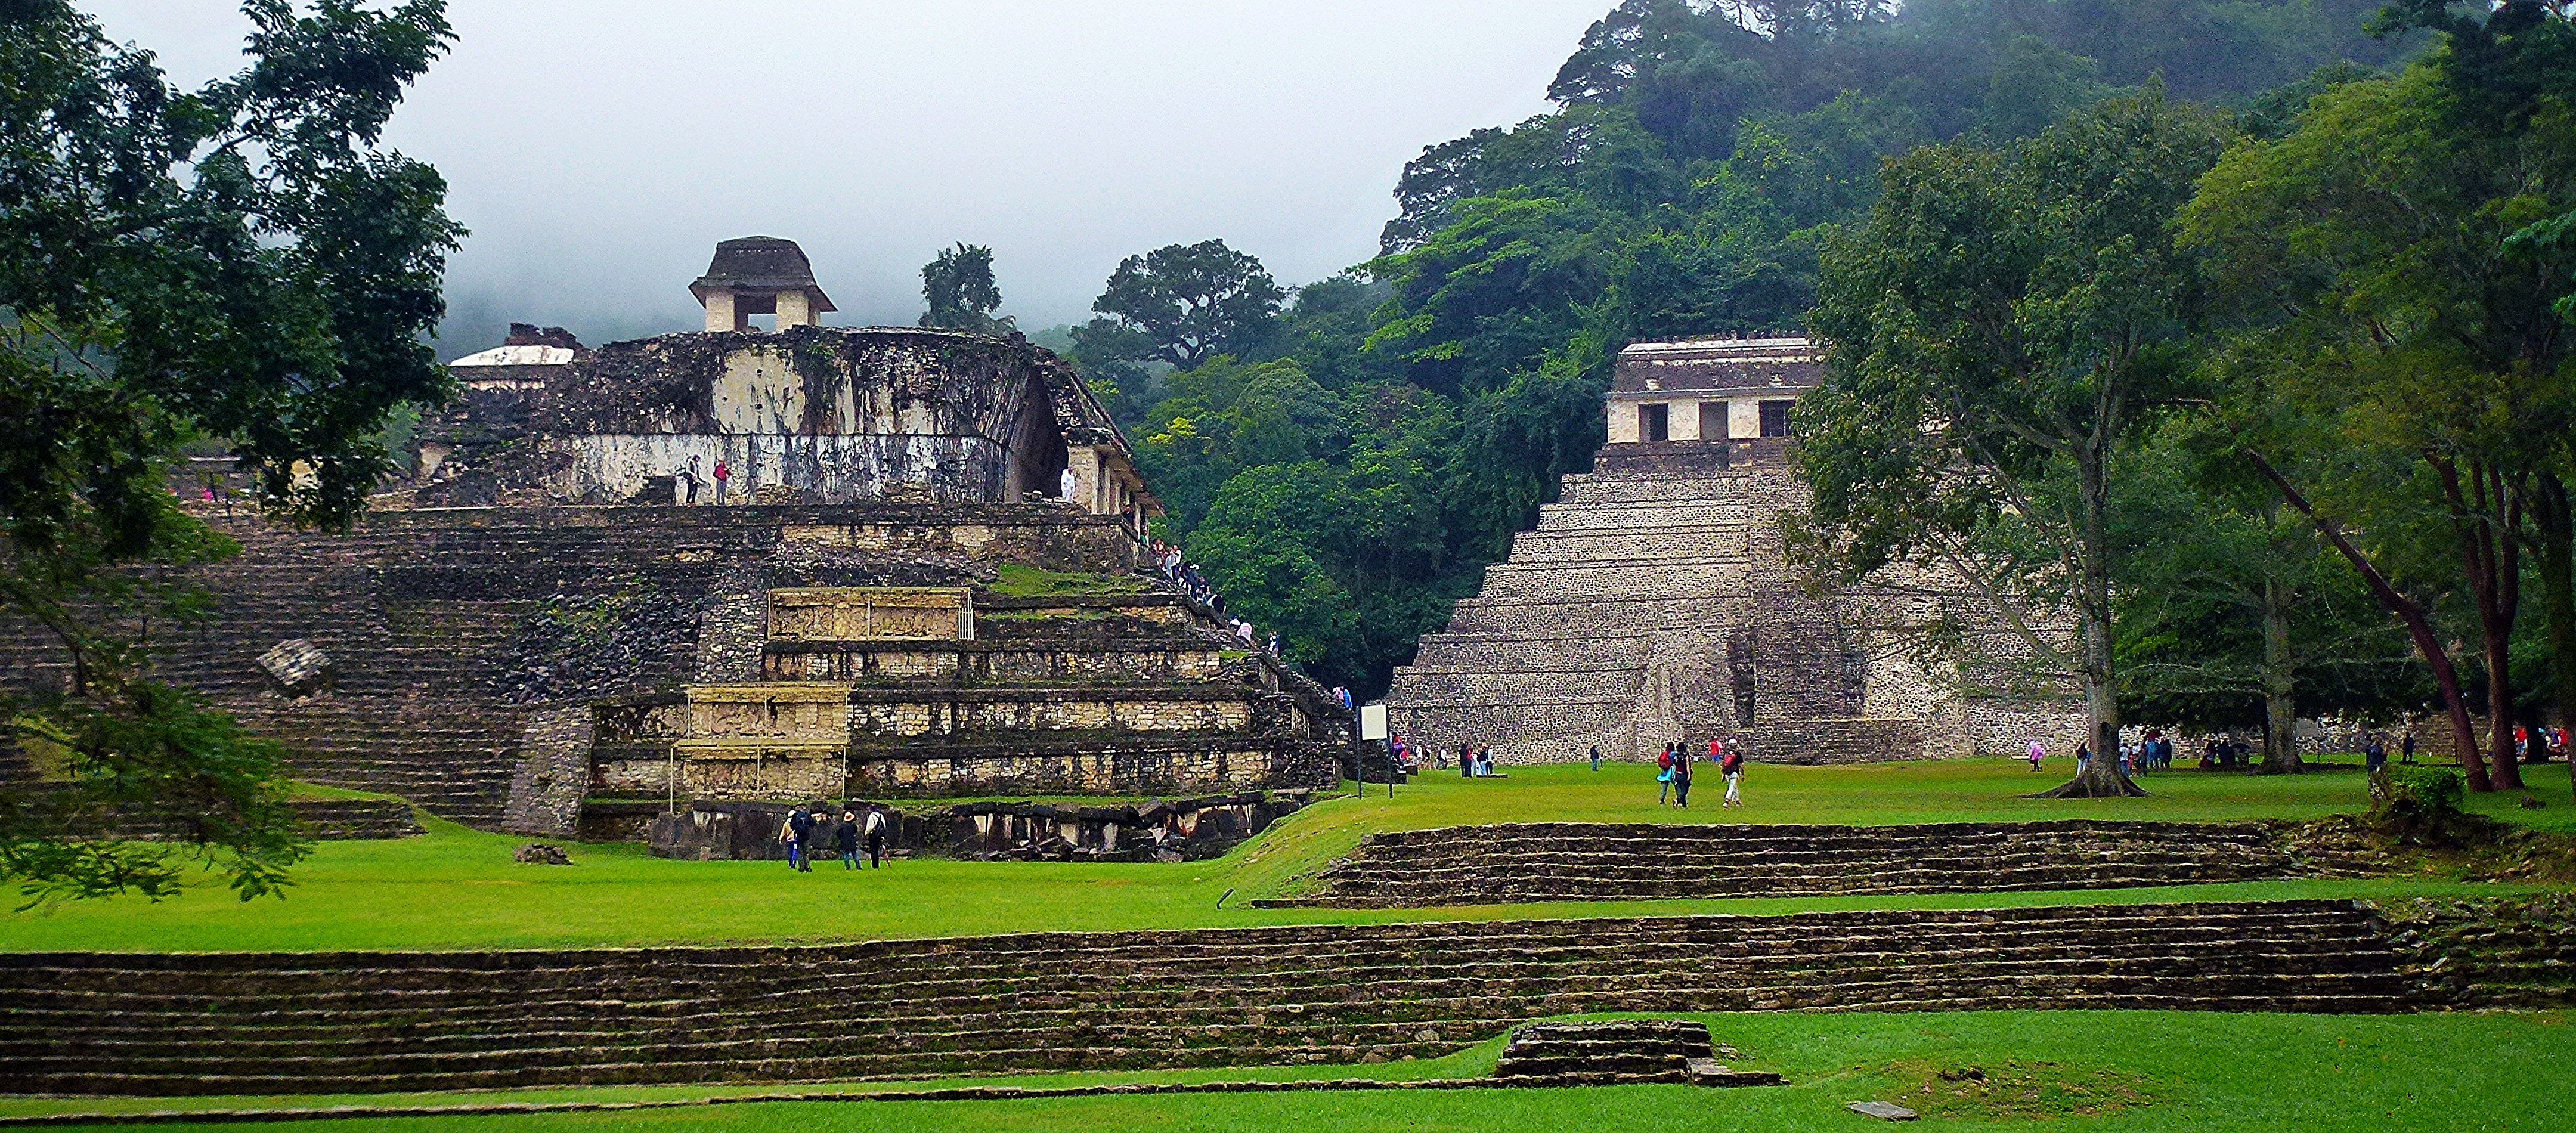 photo essays flying dutchman pat the ruins of ancient palenque are one of the best examples of a architecture in palenque was first occupied around 100 bc and it fell around 900